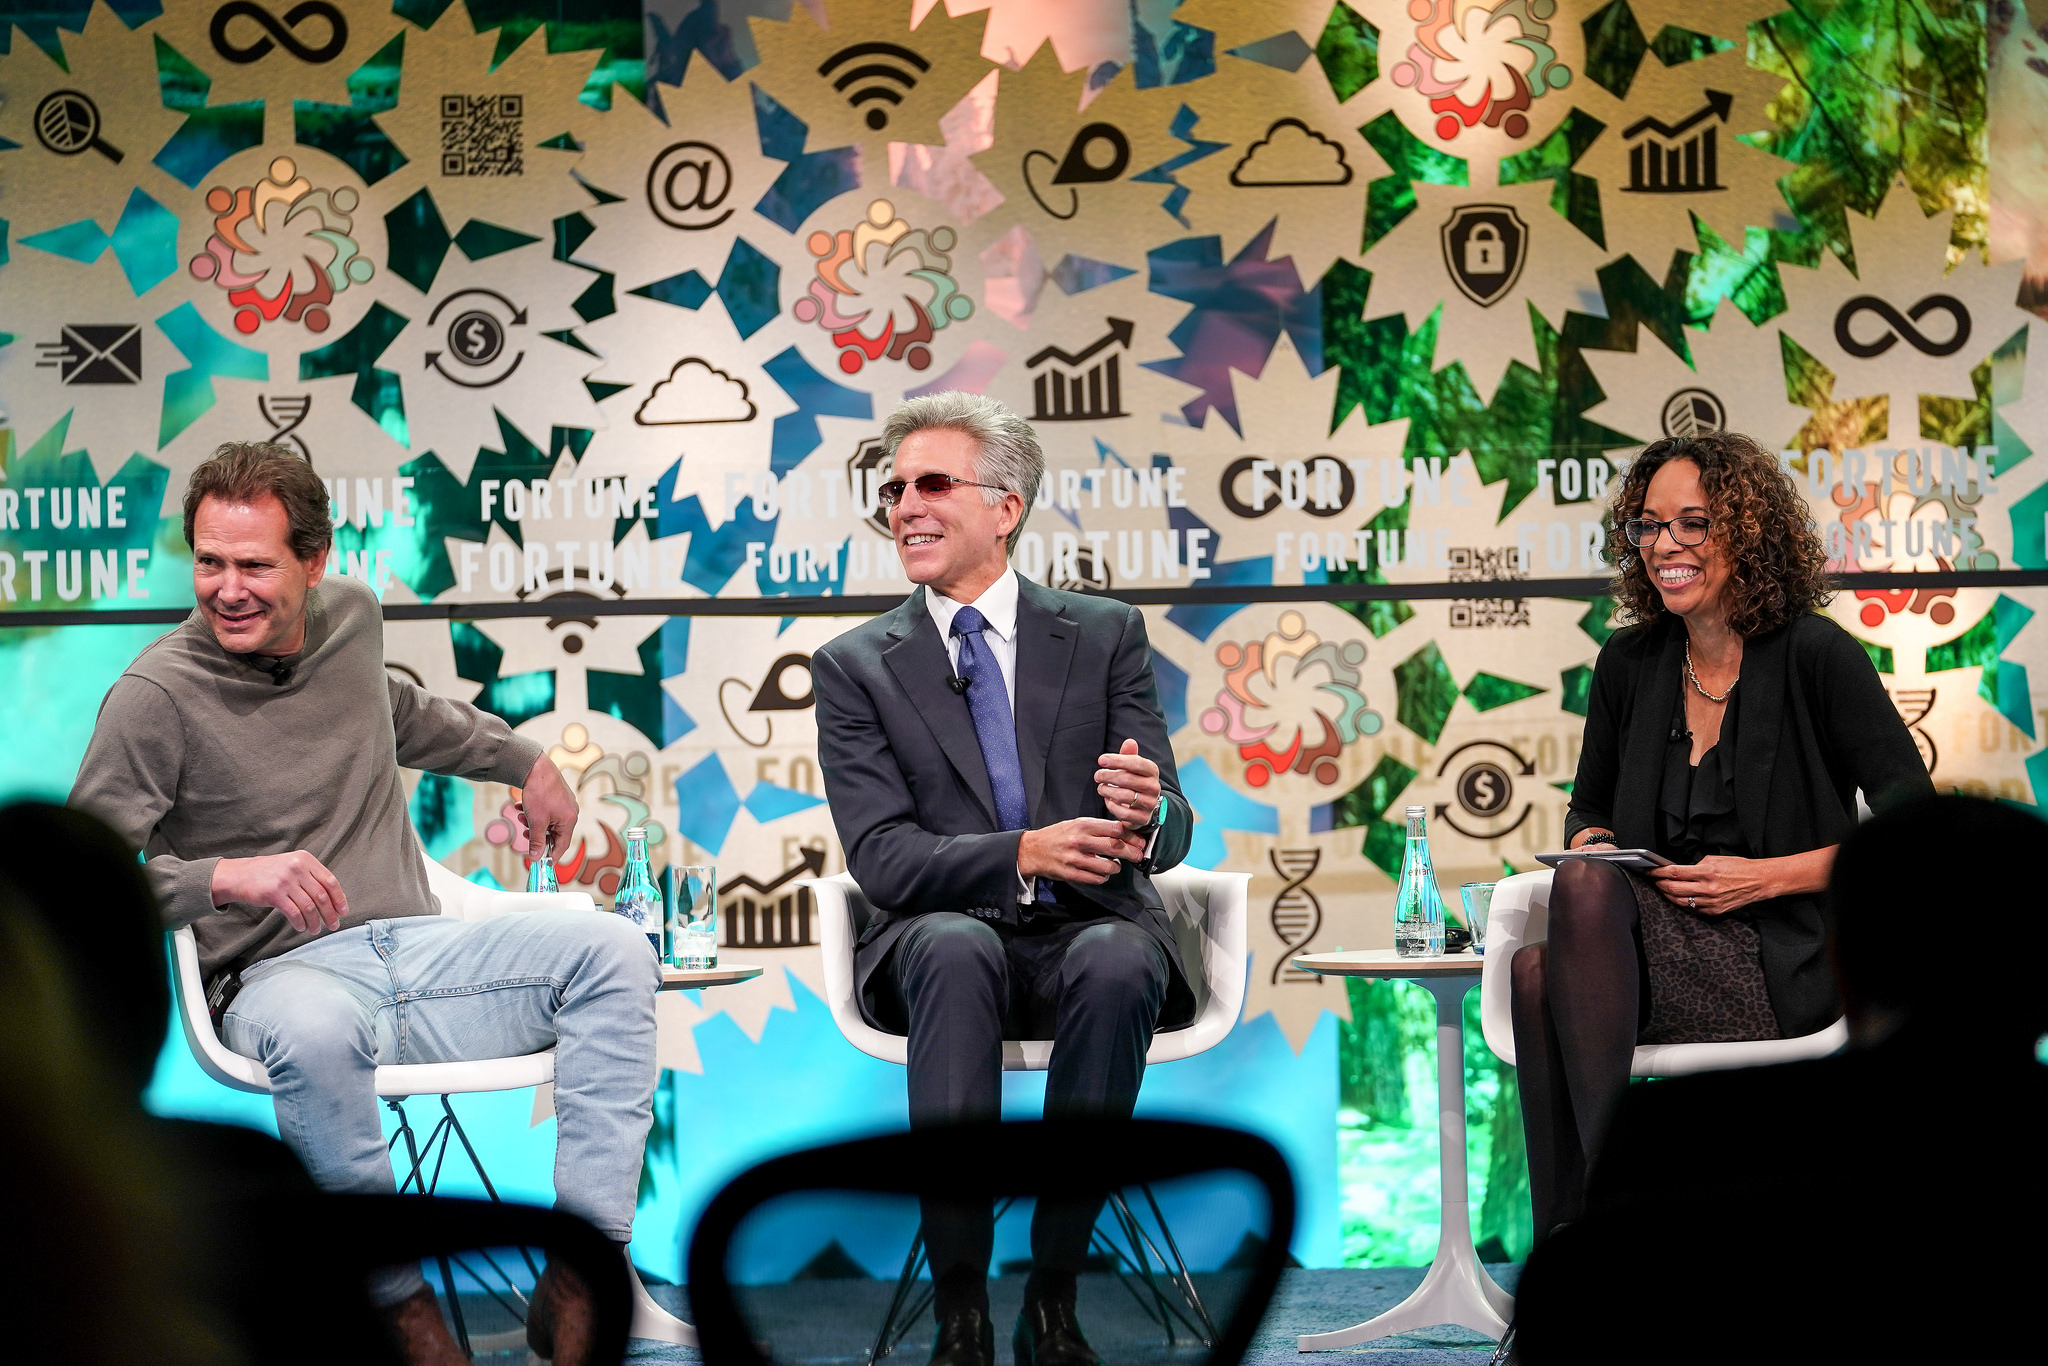 Dan Schulman (left), Bill McDermott (center), and Ellen McGirt (right) sit on stage laughing at Fortune's Global Forum.